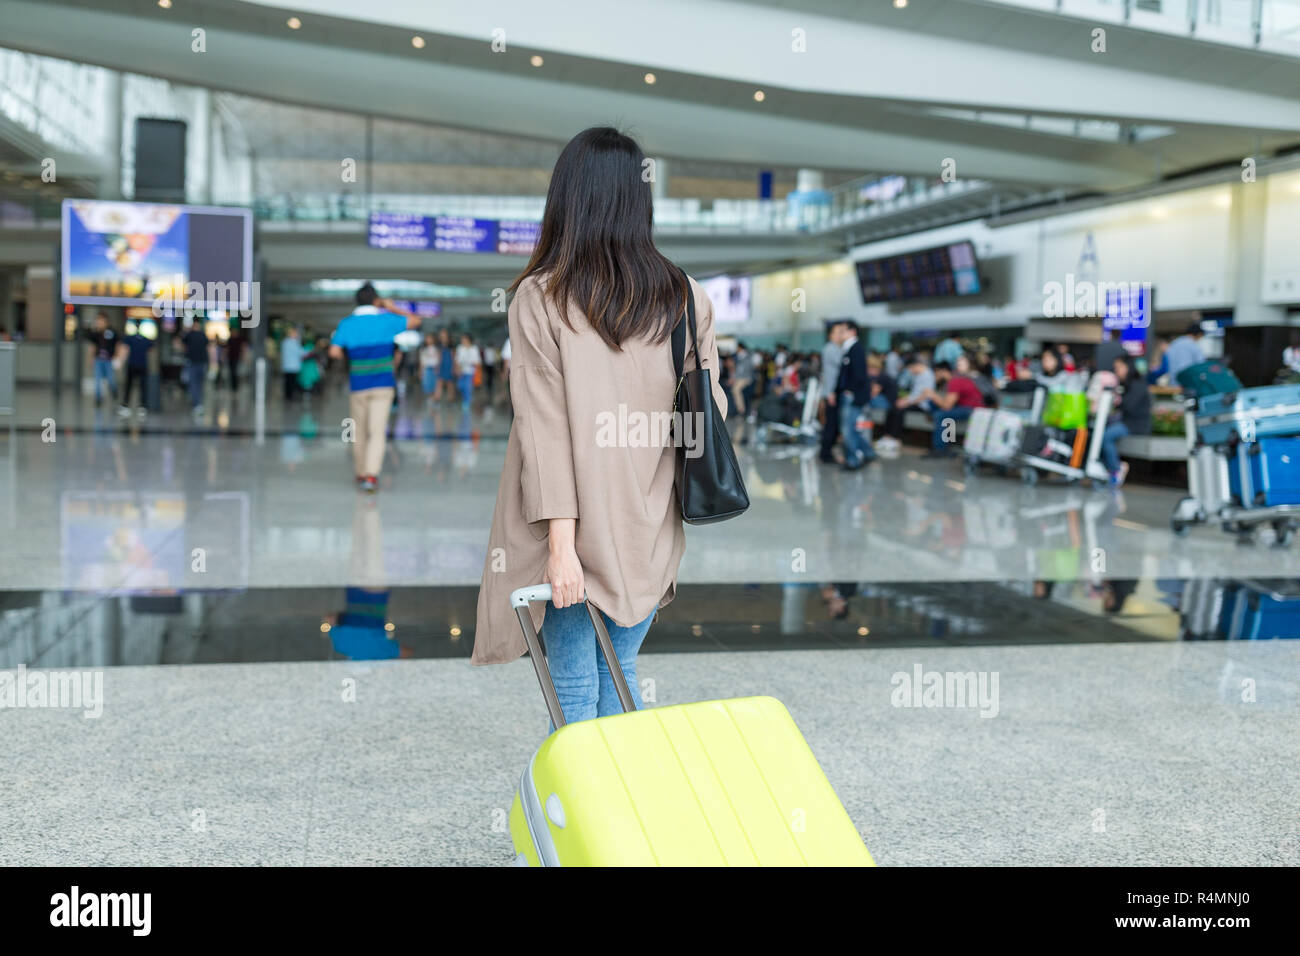 Back view of woman with her luggage in airport - Stock Image